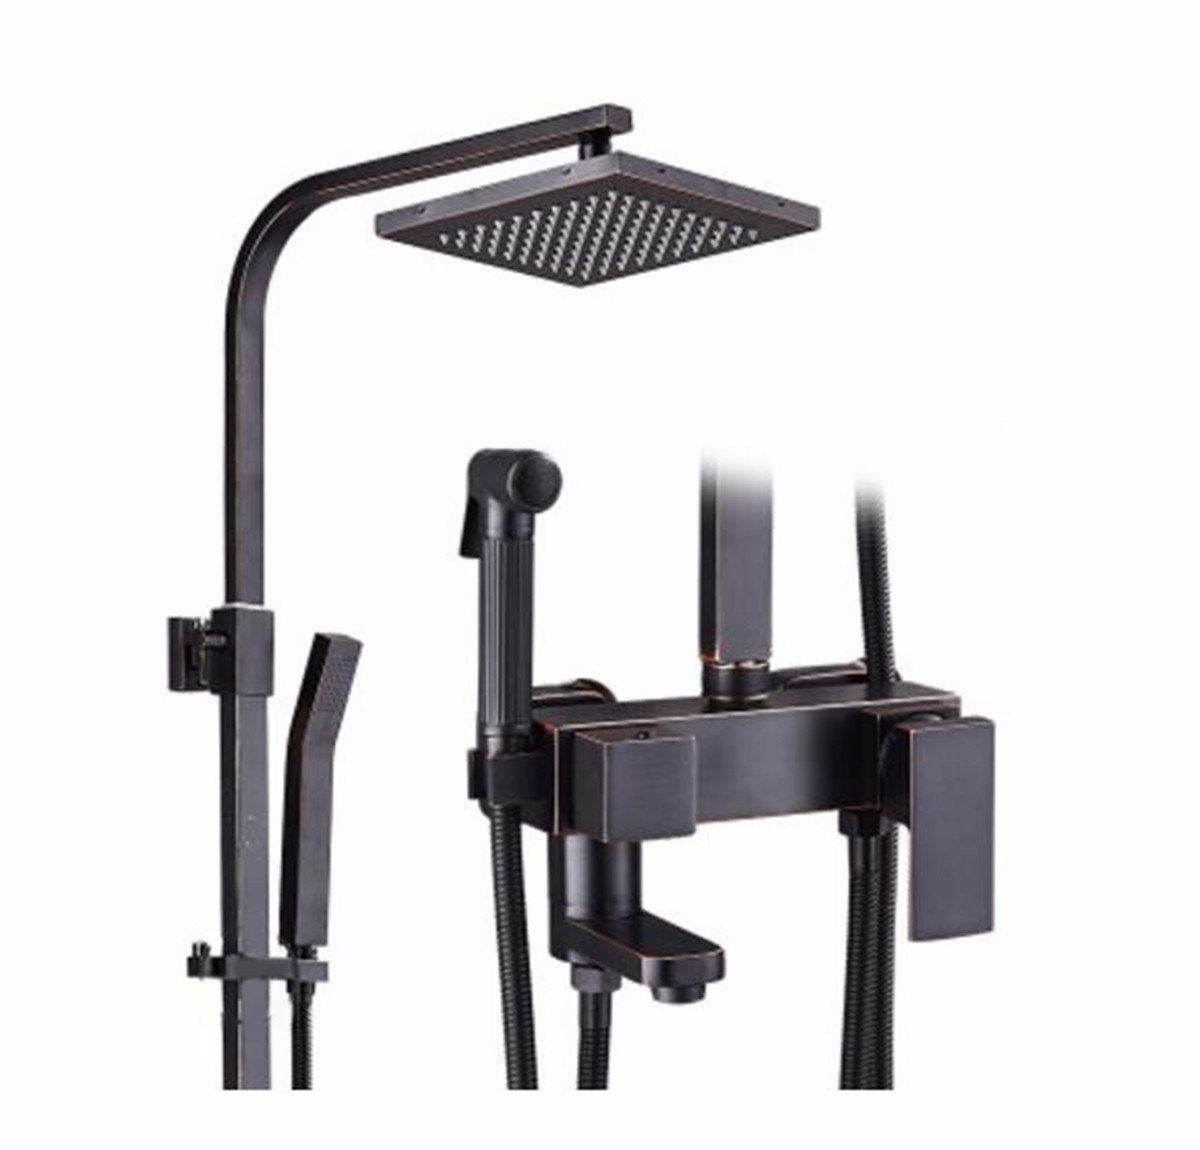 B Shower Dark Three Or Four Files Into The Wall And Handheld Shower Set,C